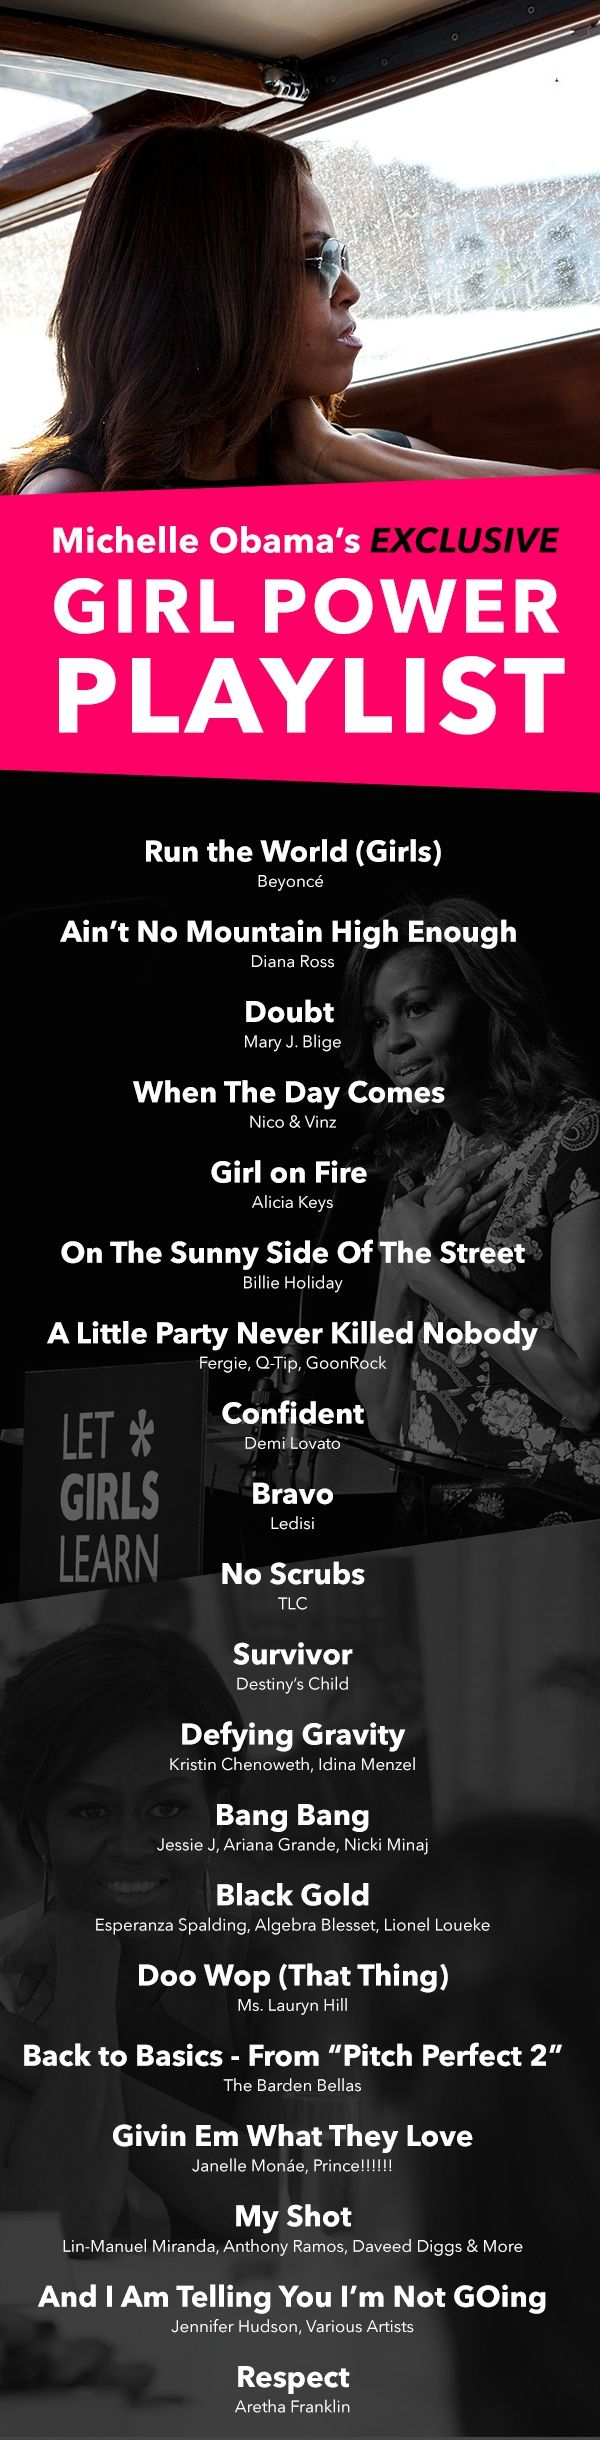 The ultimate girl power playlist from The First Lady herself